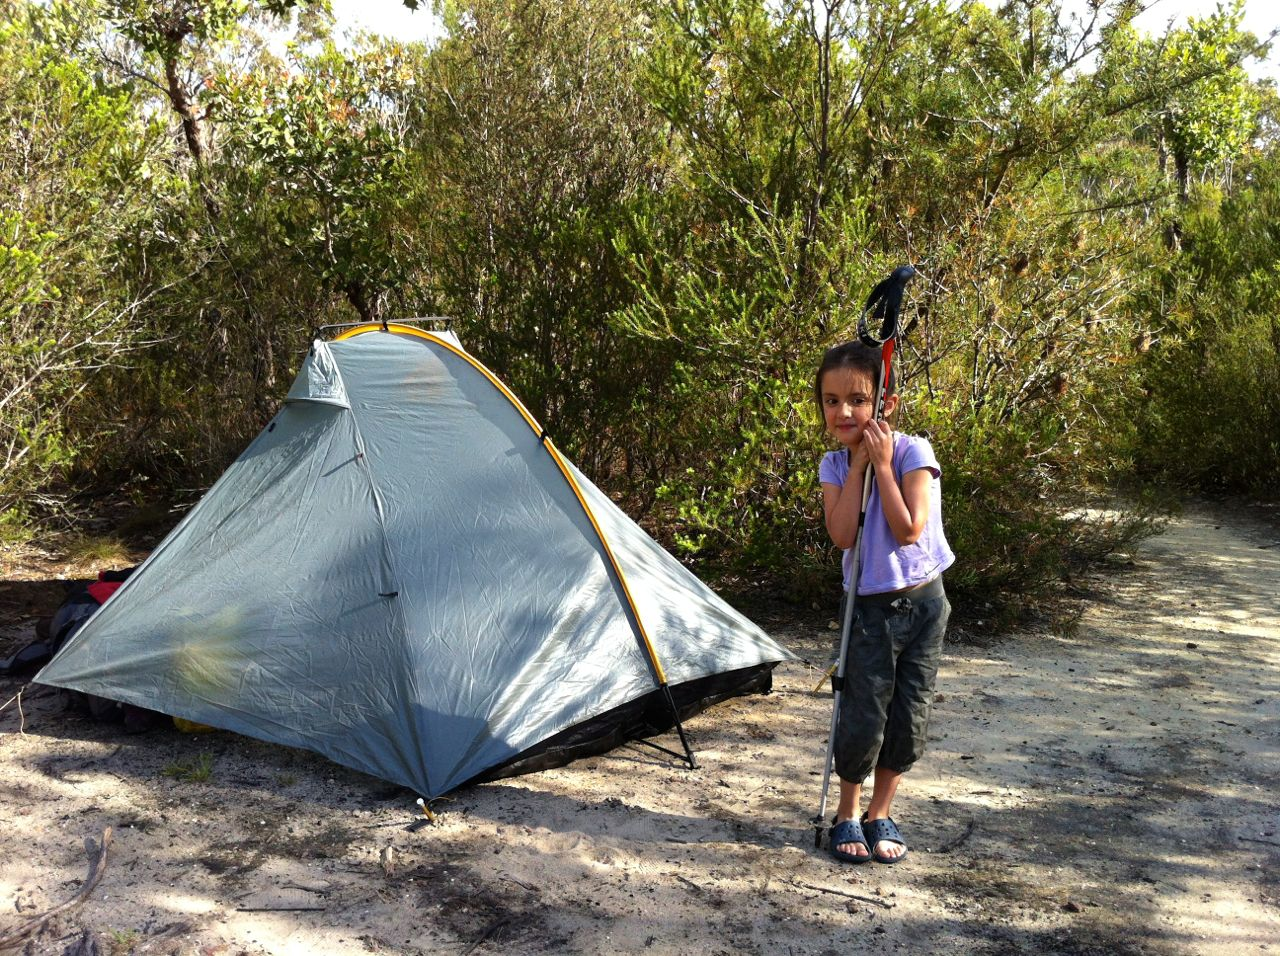 Marilla Kingfisher Pool Heathcote NP & Review: Tarptent Double Rainbow | The Life Outdoors